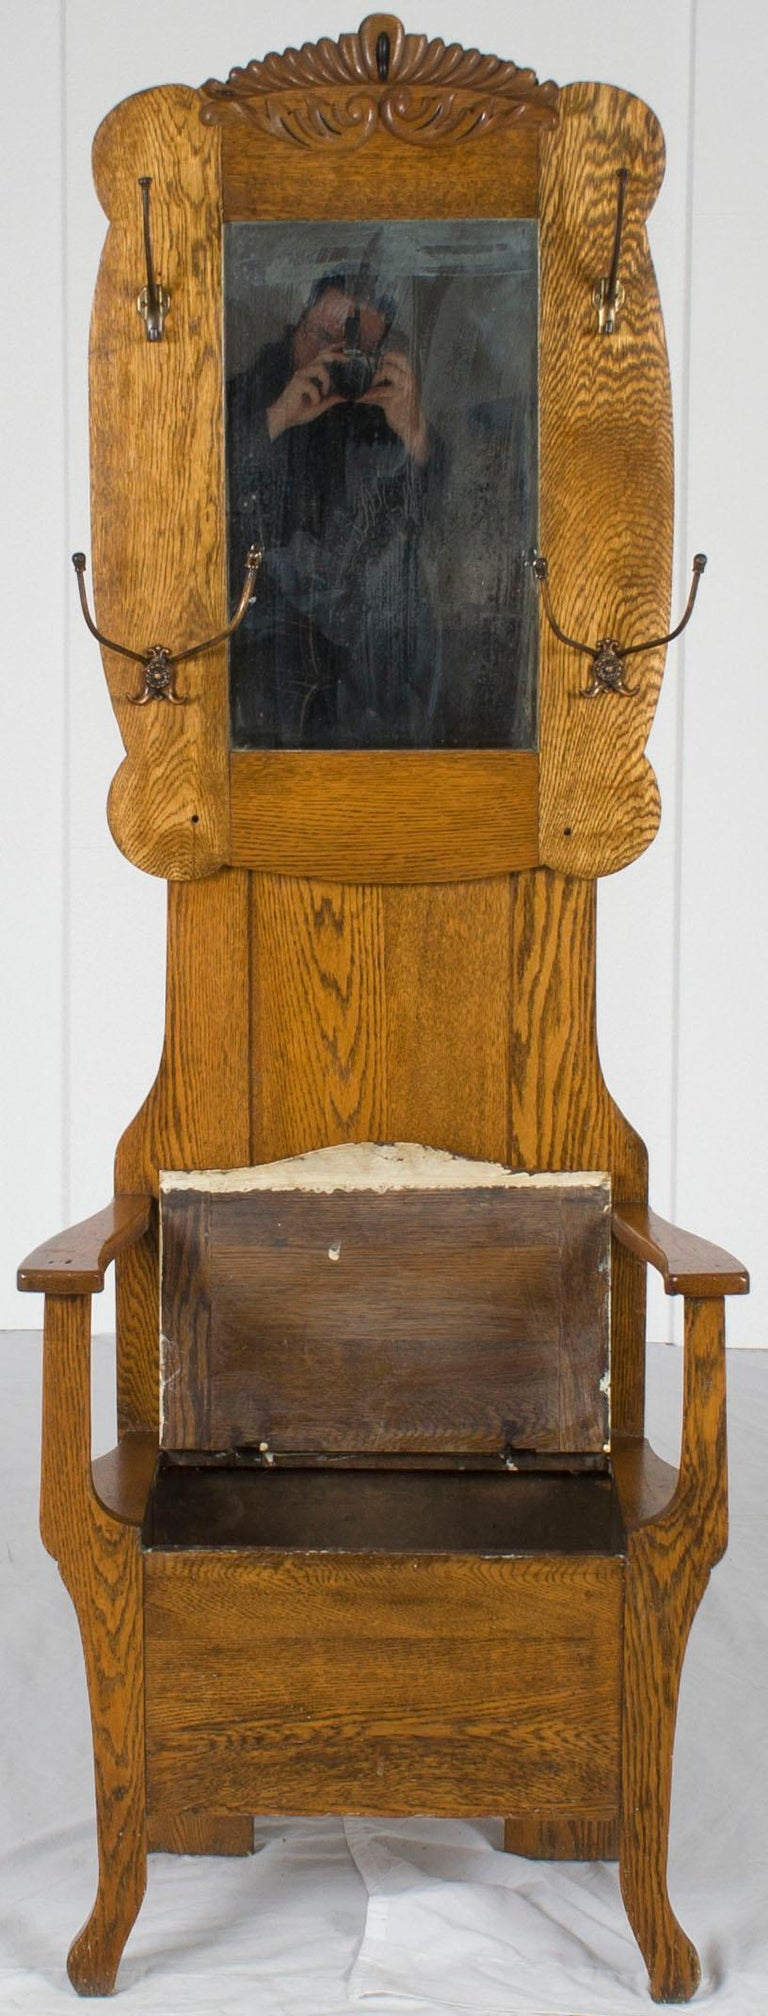 Oak Seated Hall Tree Stand Seat With Storage Coat Hat Rack